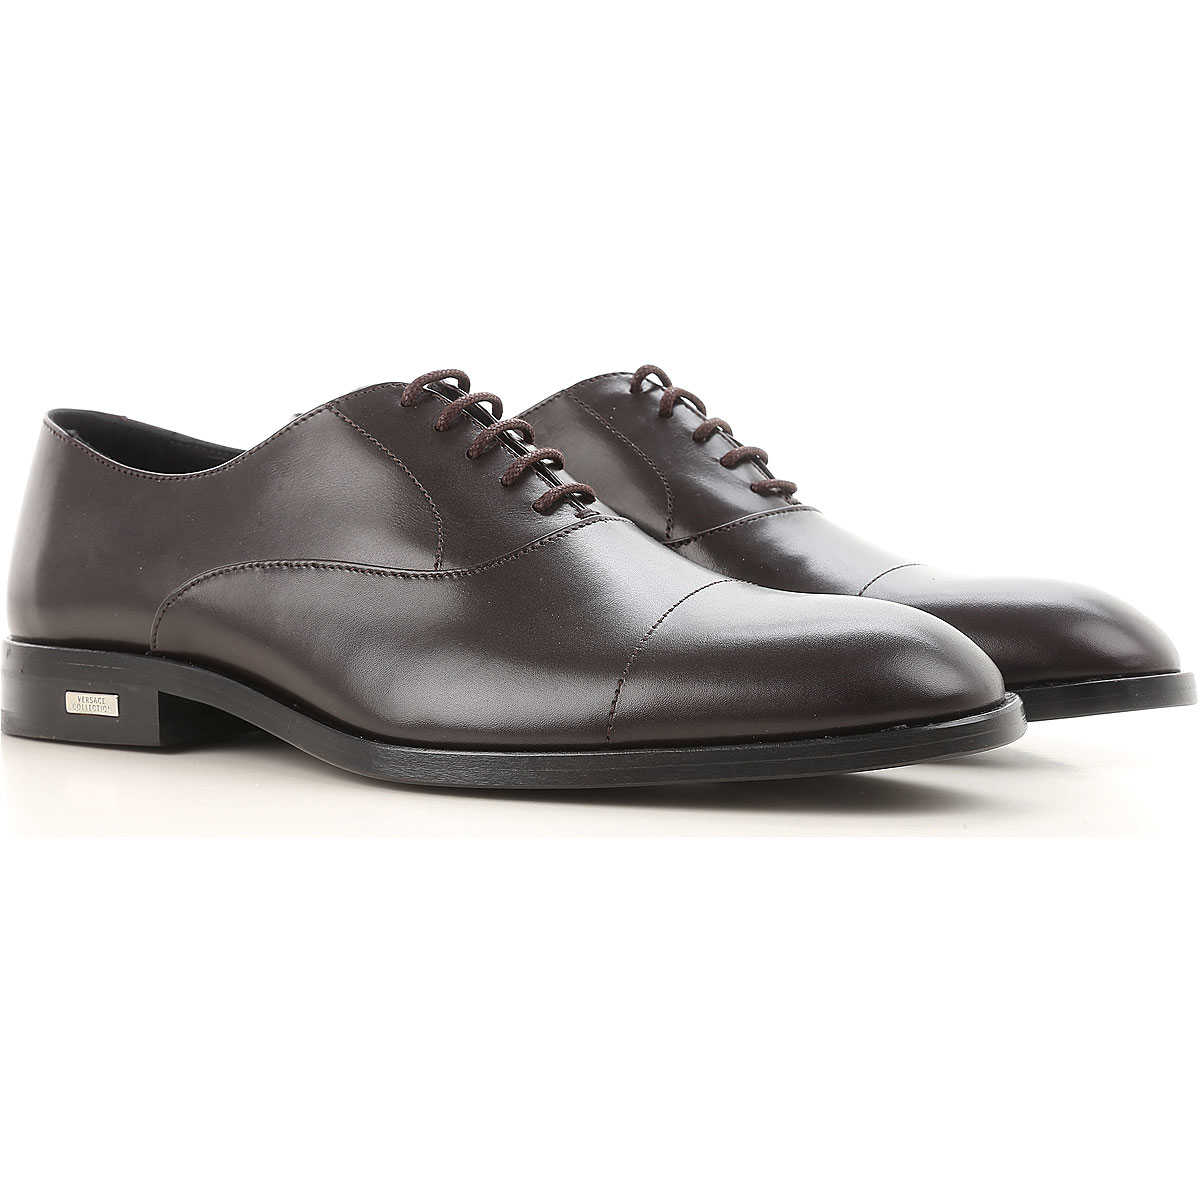 Versace Lace Up Shoes for Men Oxfords Derbies and Brogues On Sale SE - GOOFASH